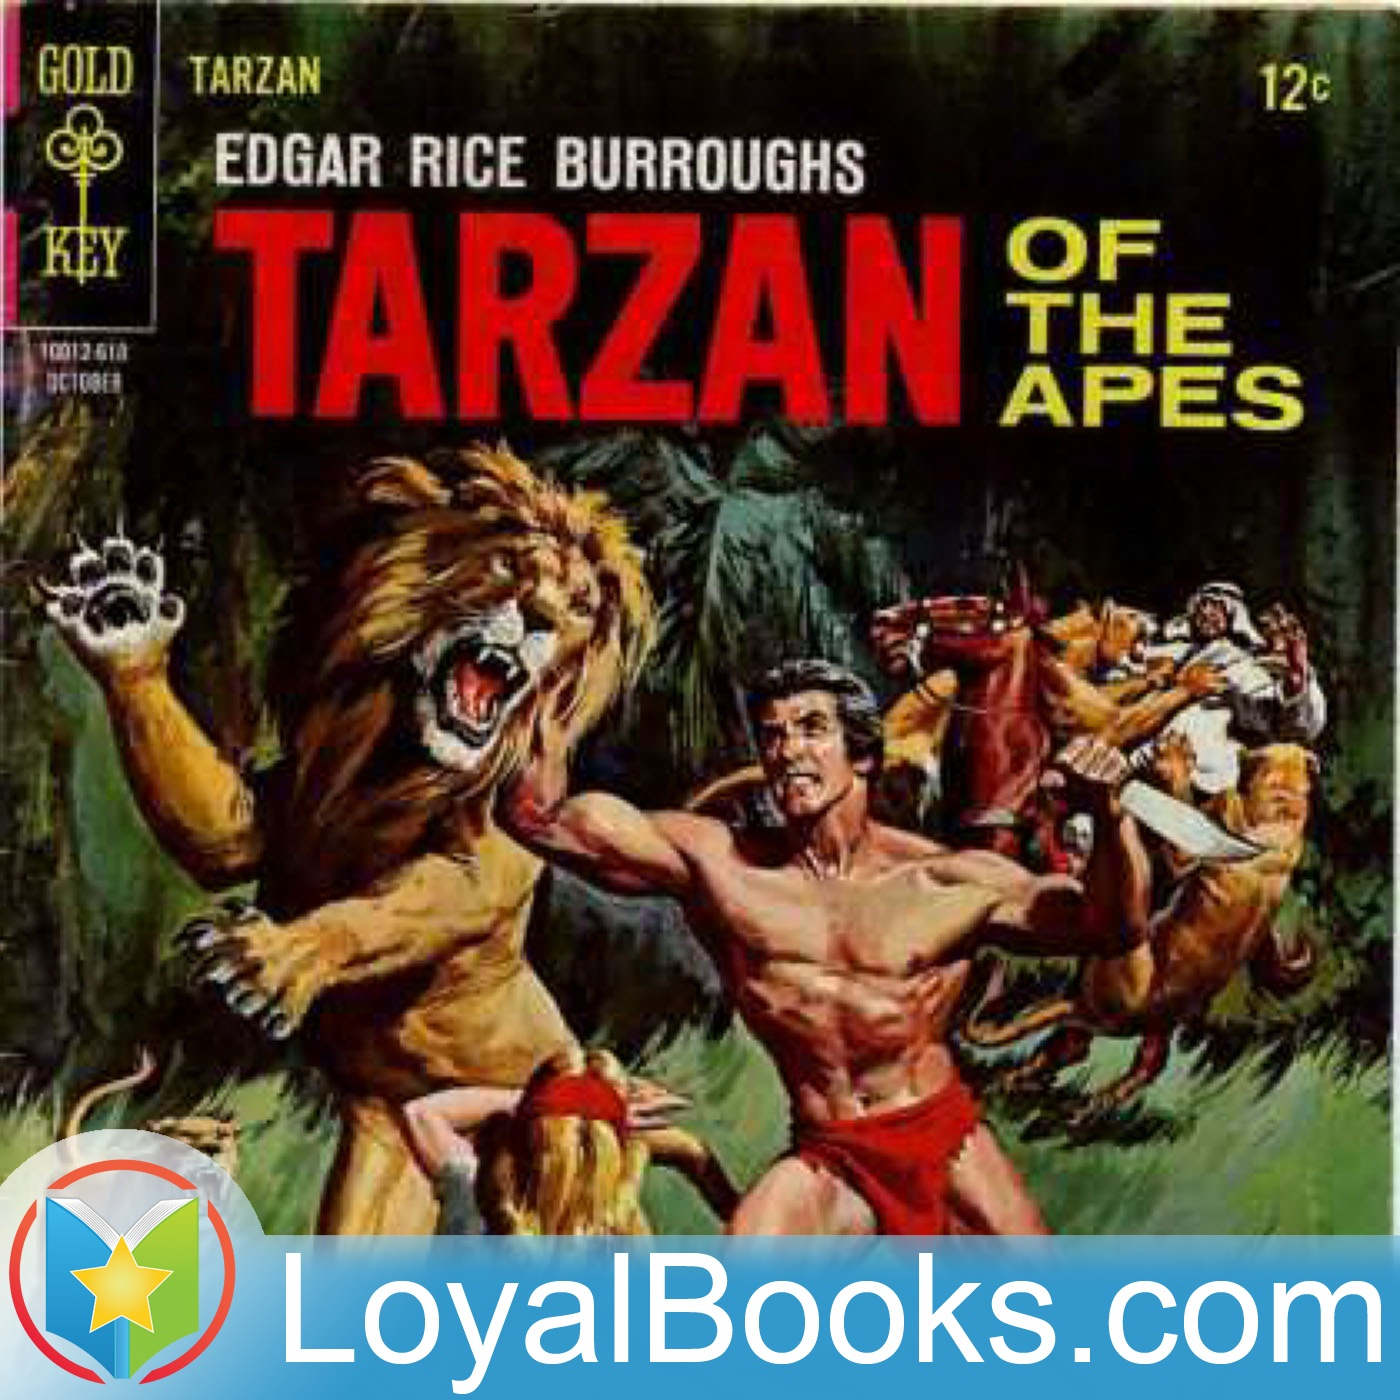 <![CDATA[Tarzan of the Apes by Edgar Rice Burroughs]]>